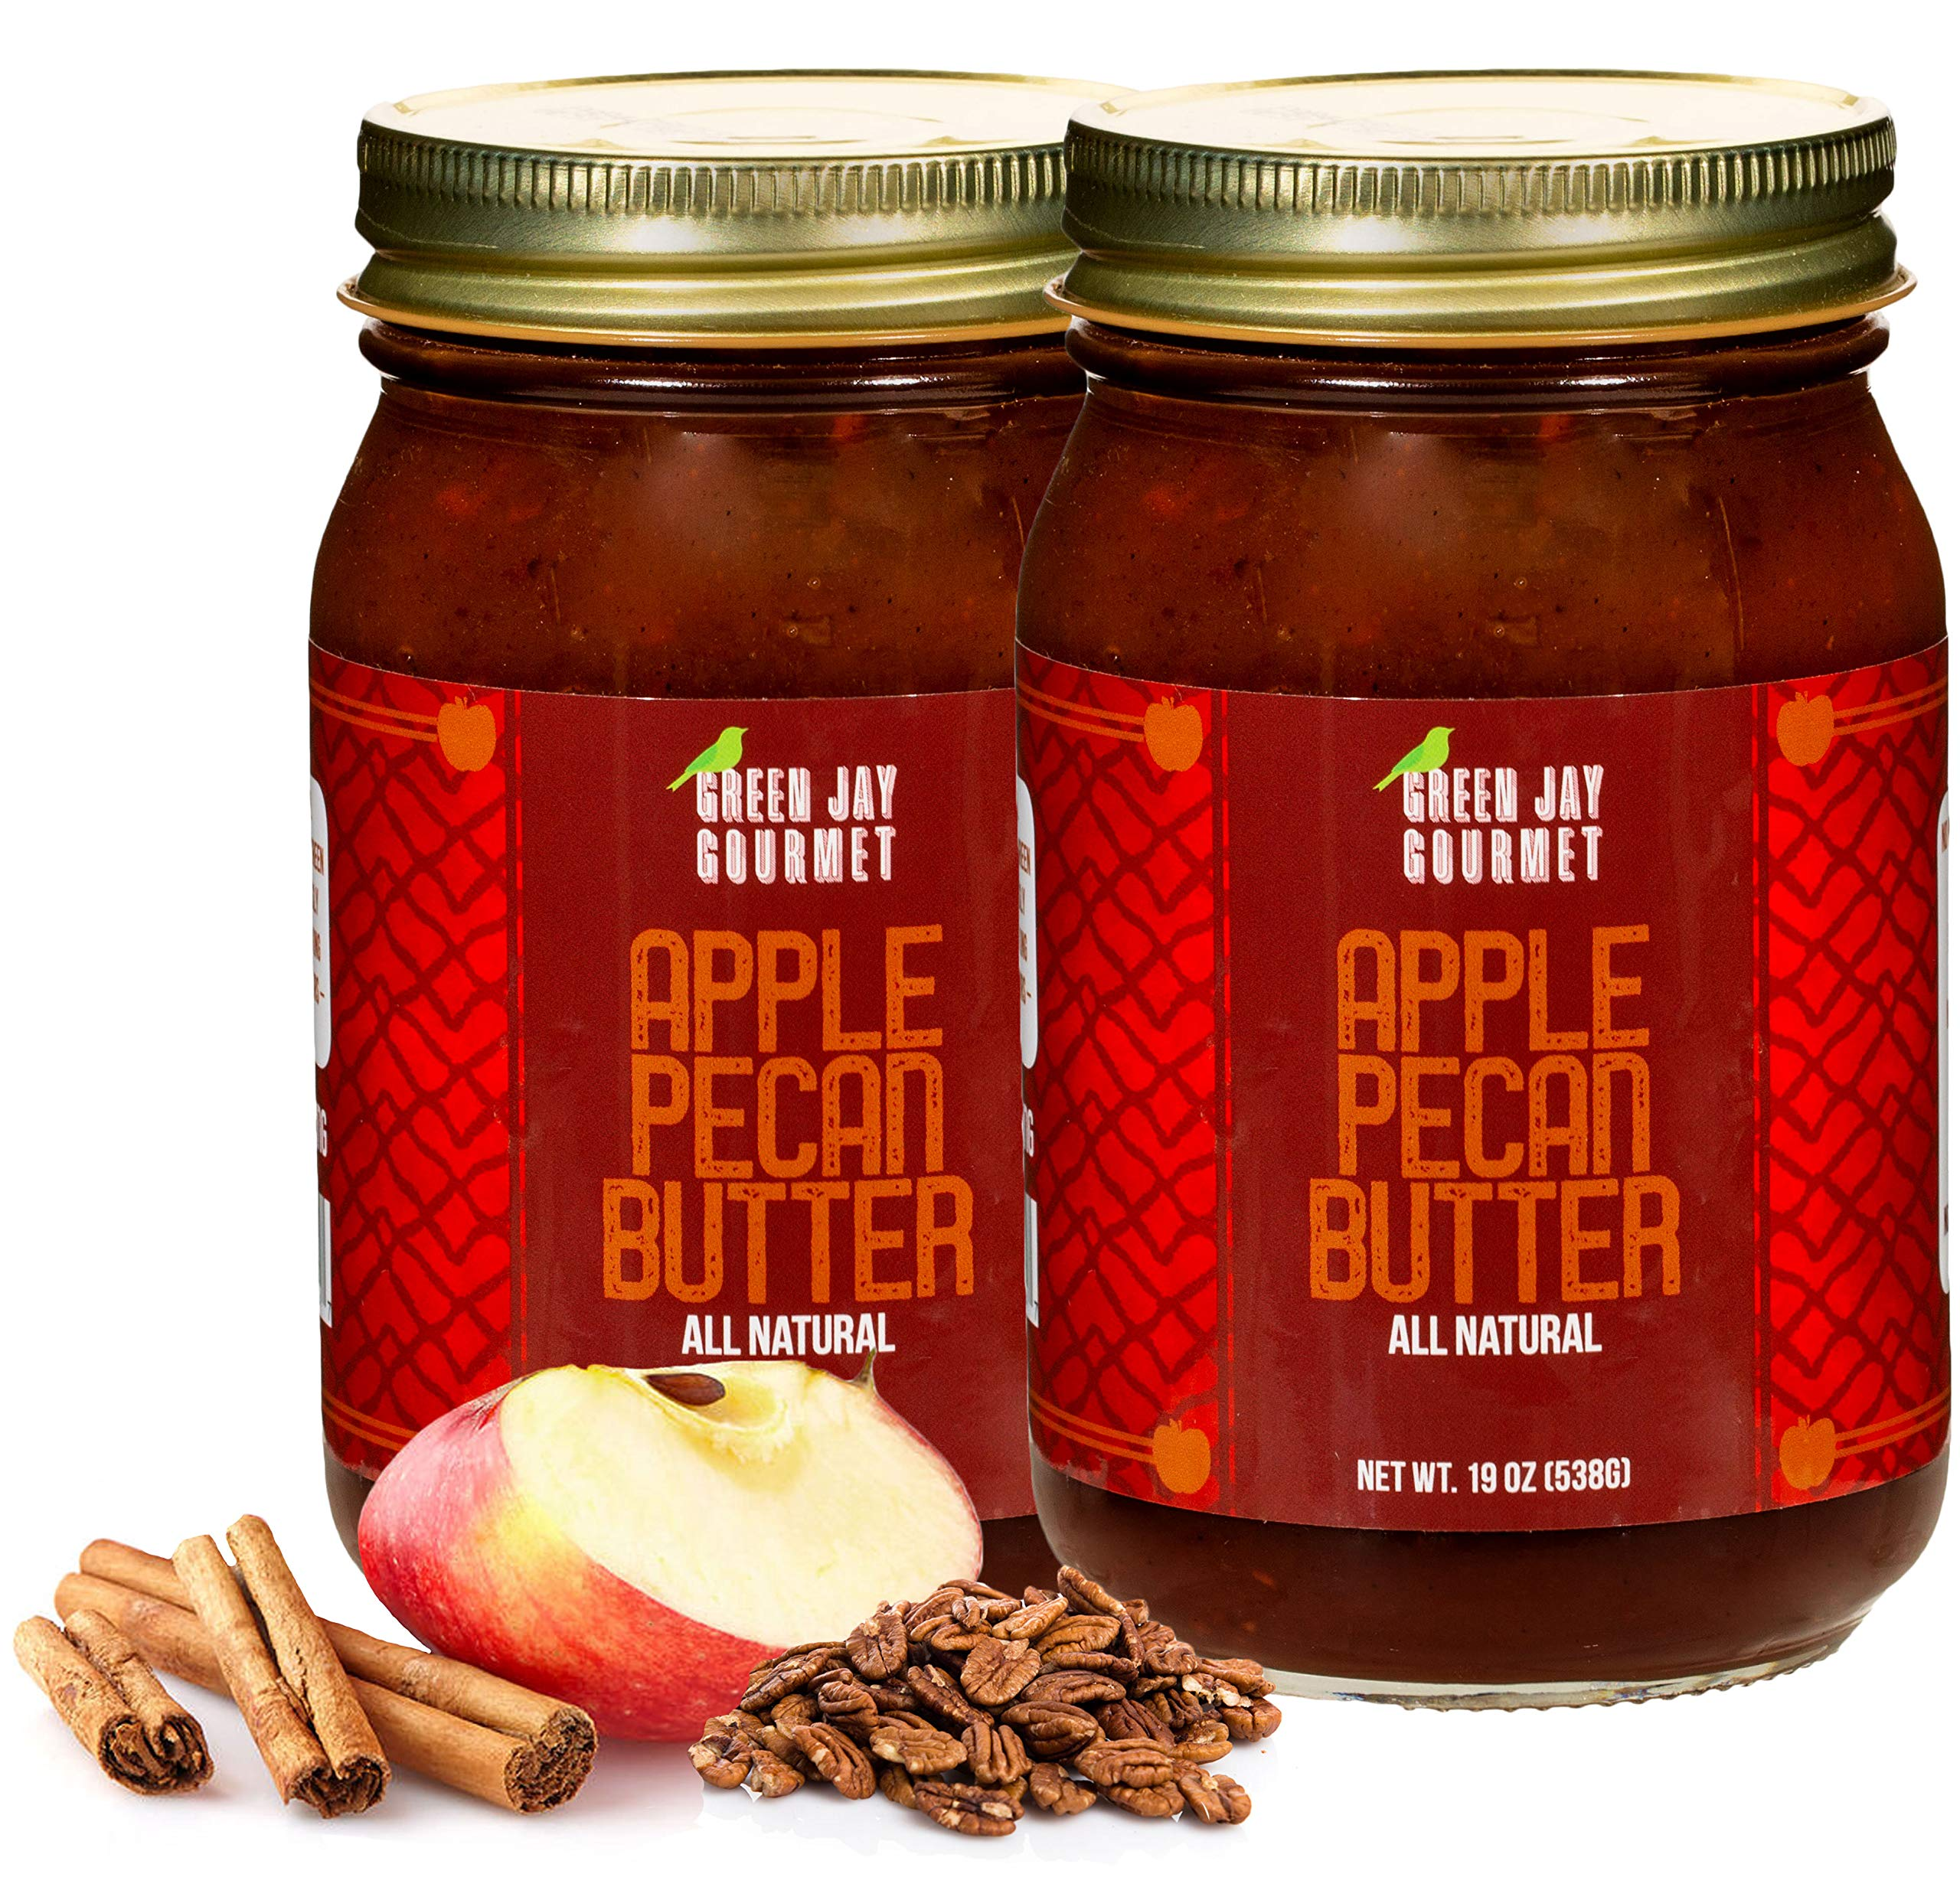 Green Jay Gourmet Apple Pecan Butter - All-Natural, Gluten-Free Fruit Spread - Pecan Apple Butter with Cinnamon - Gourmet Fruit Butter - No Corn Syrup, Preservatives or Trans-Fats - 2 x 19 Ounces